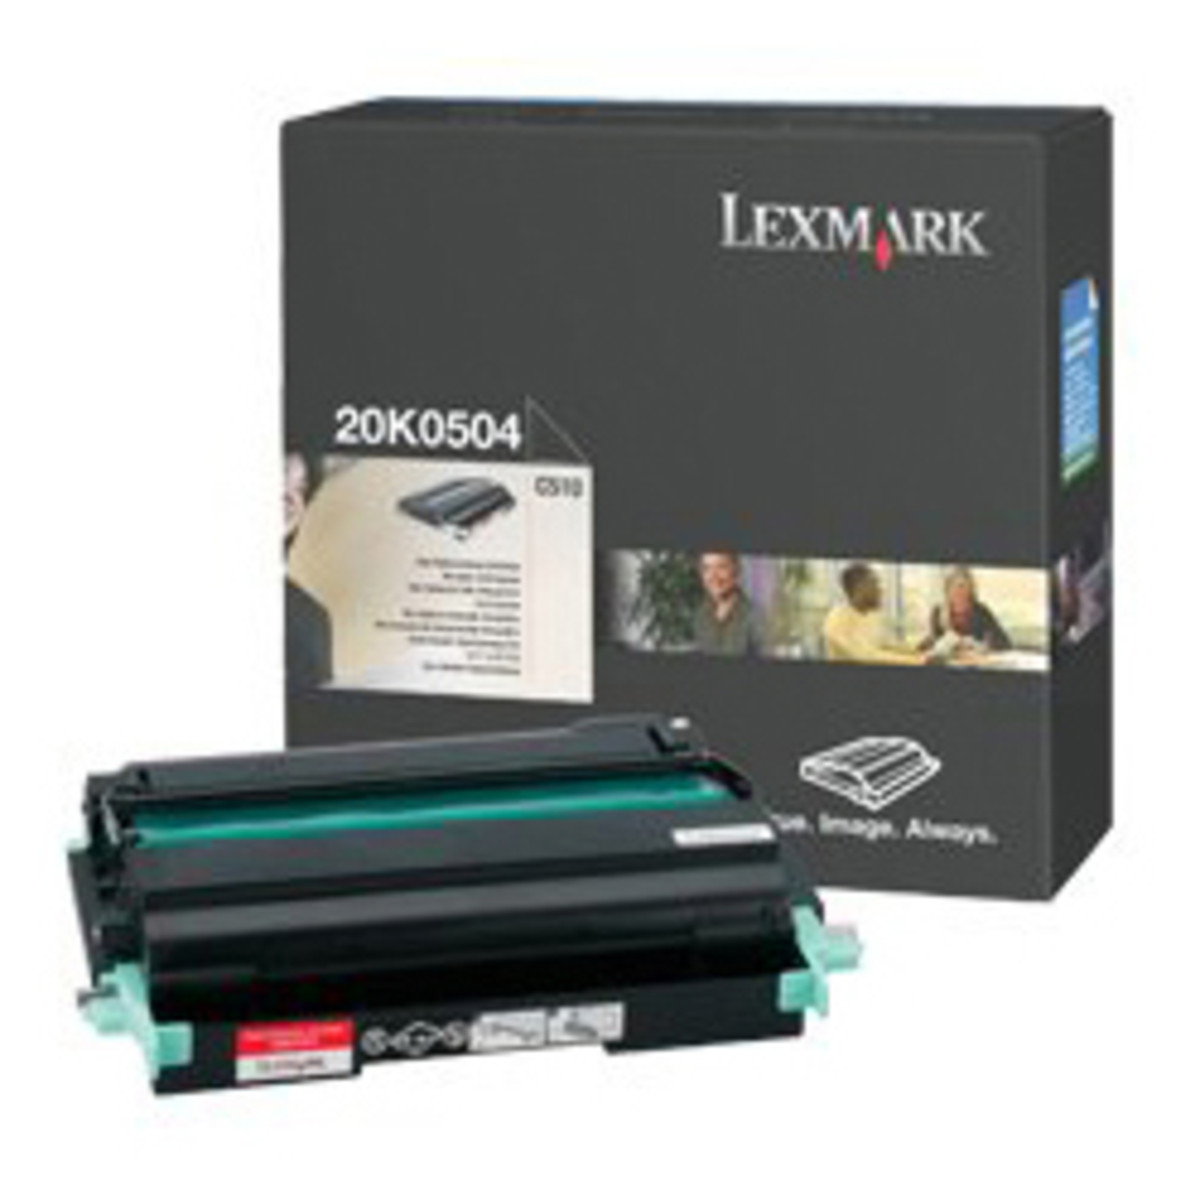 Lexmark C510 Photo Developer Unit